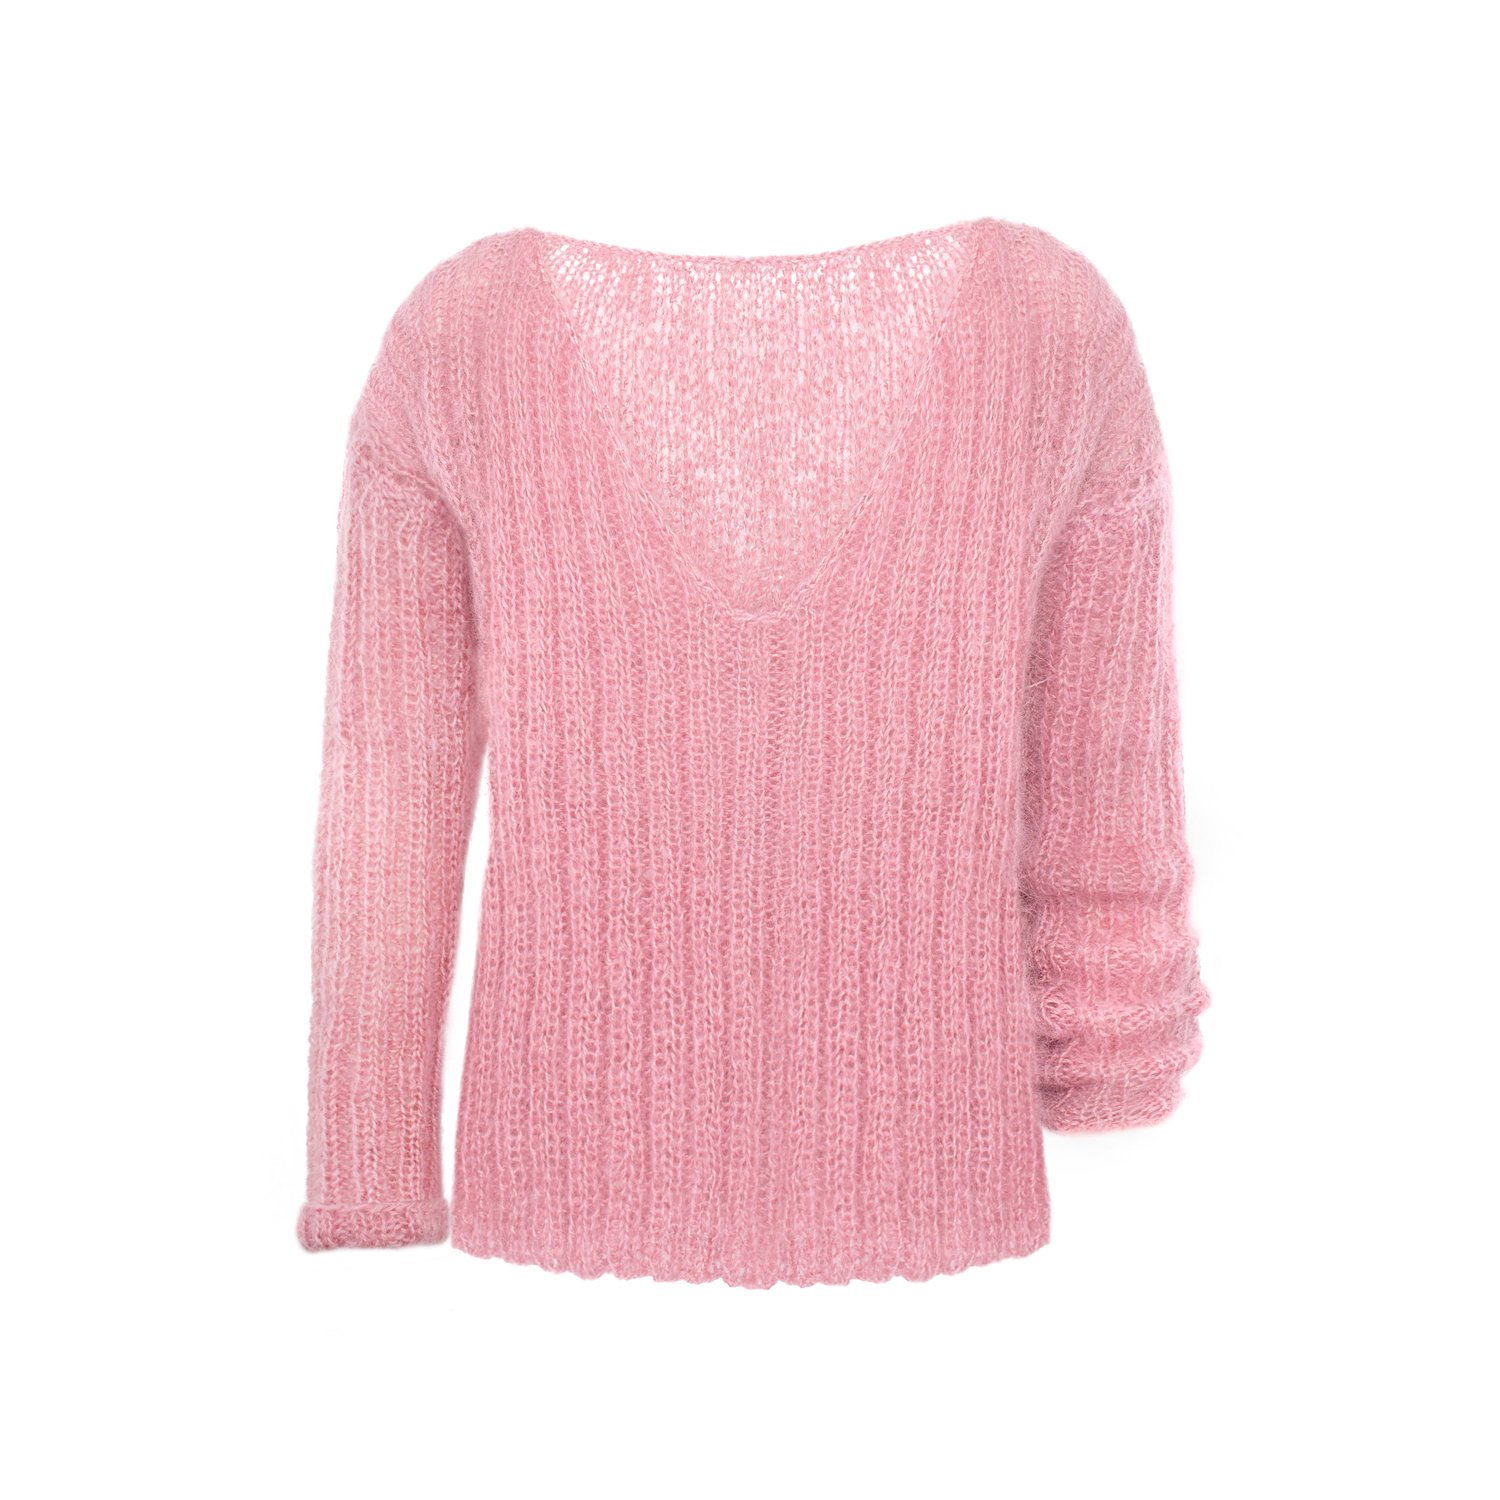 Hand knit pink mohair and wool sweater from Argentina by Bariloche handknit mohair sweater size M mohair sweater pink and white sweater